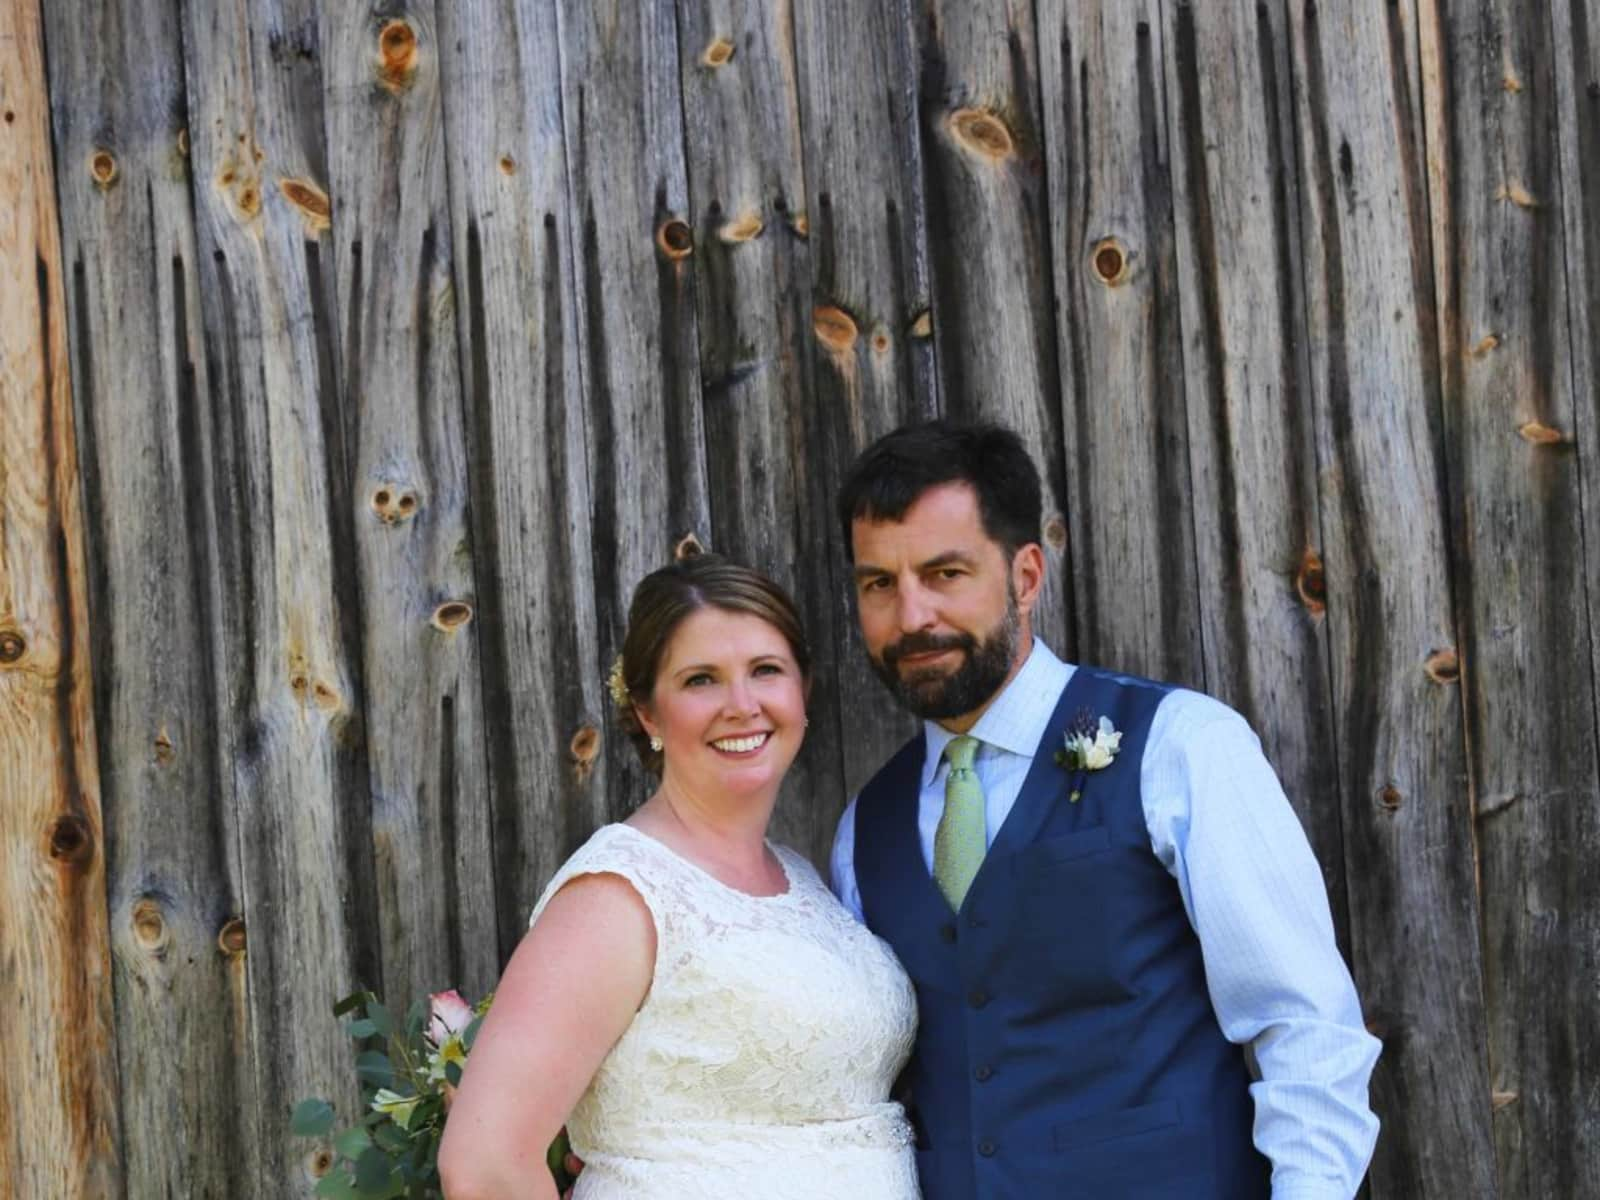 Rob & Meghan from Reno, Nevada, United States